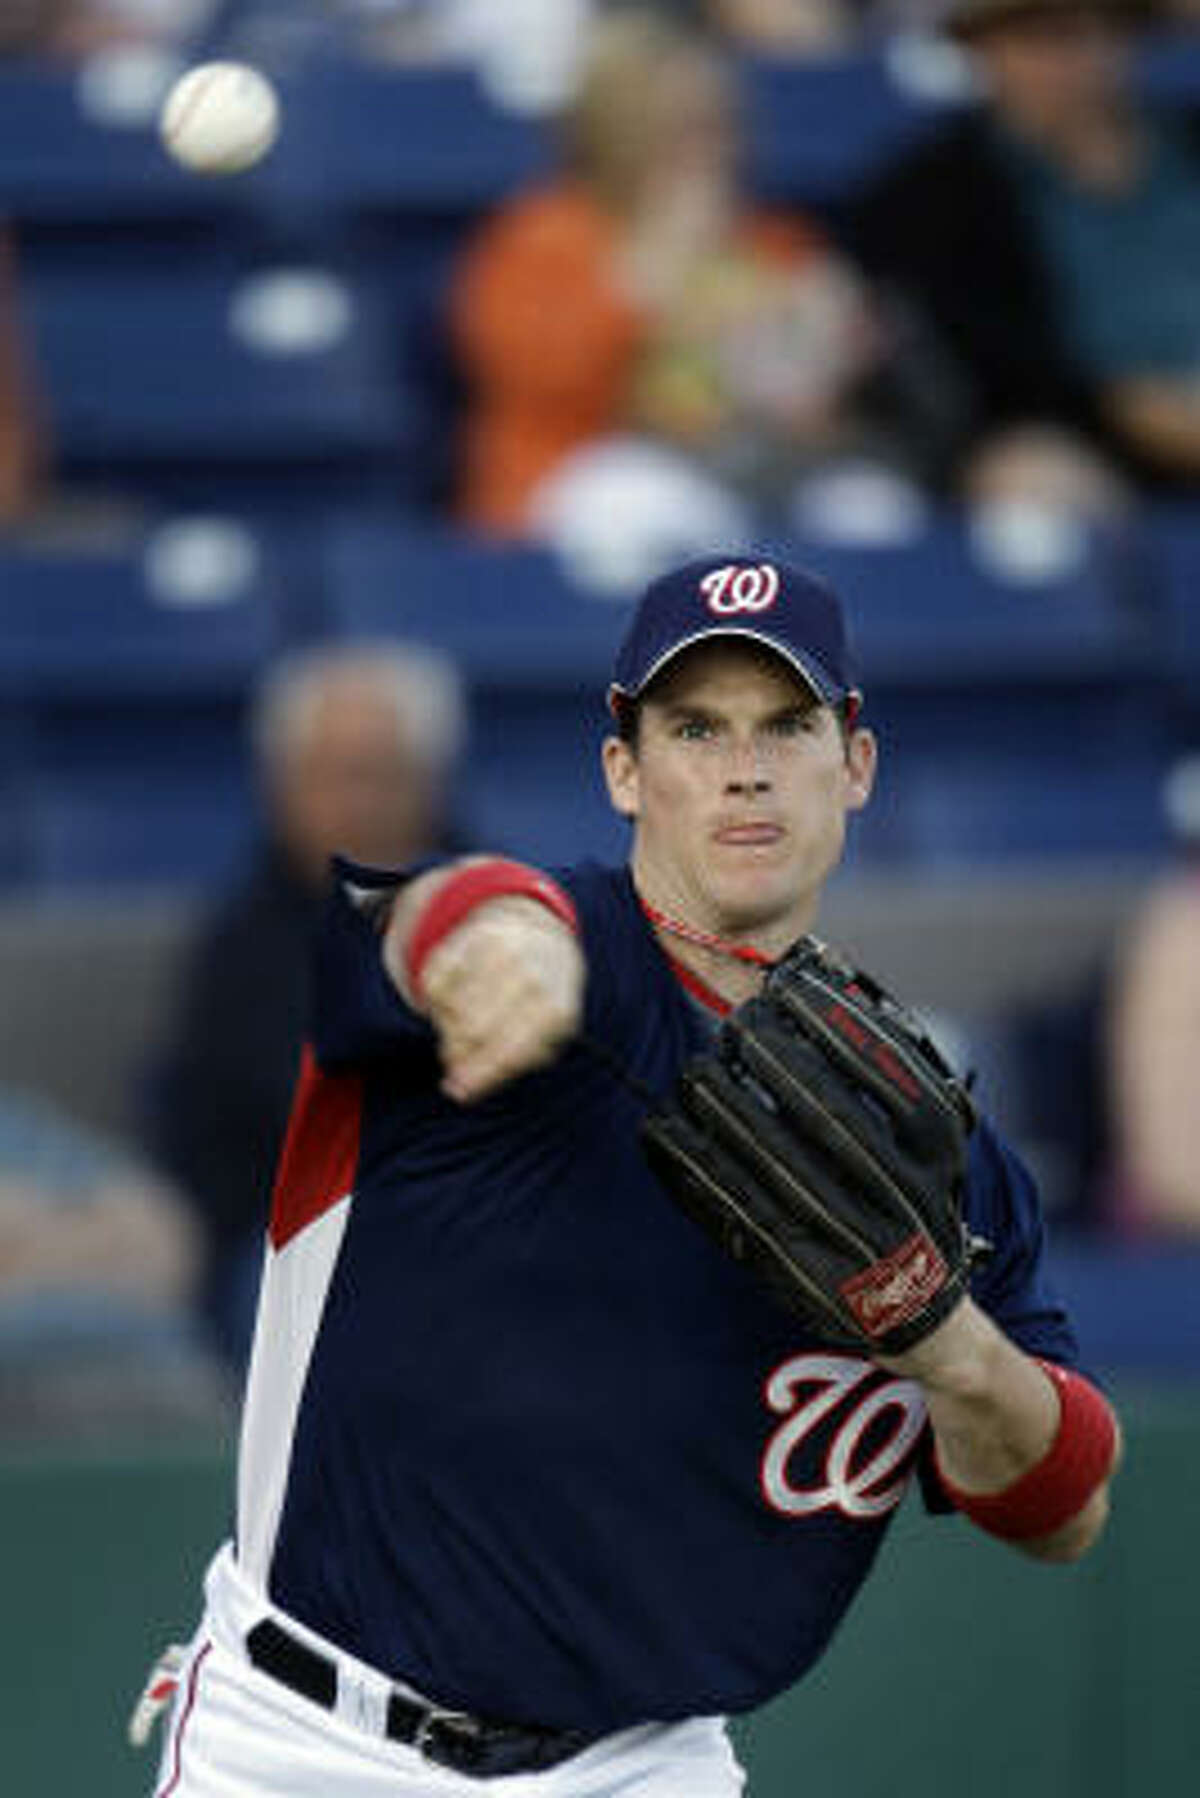 Washington Nationals outfielder Josh Willingham loosens up before the start.